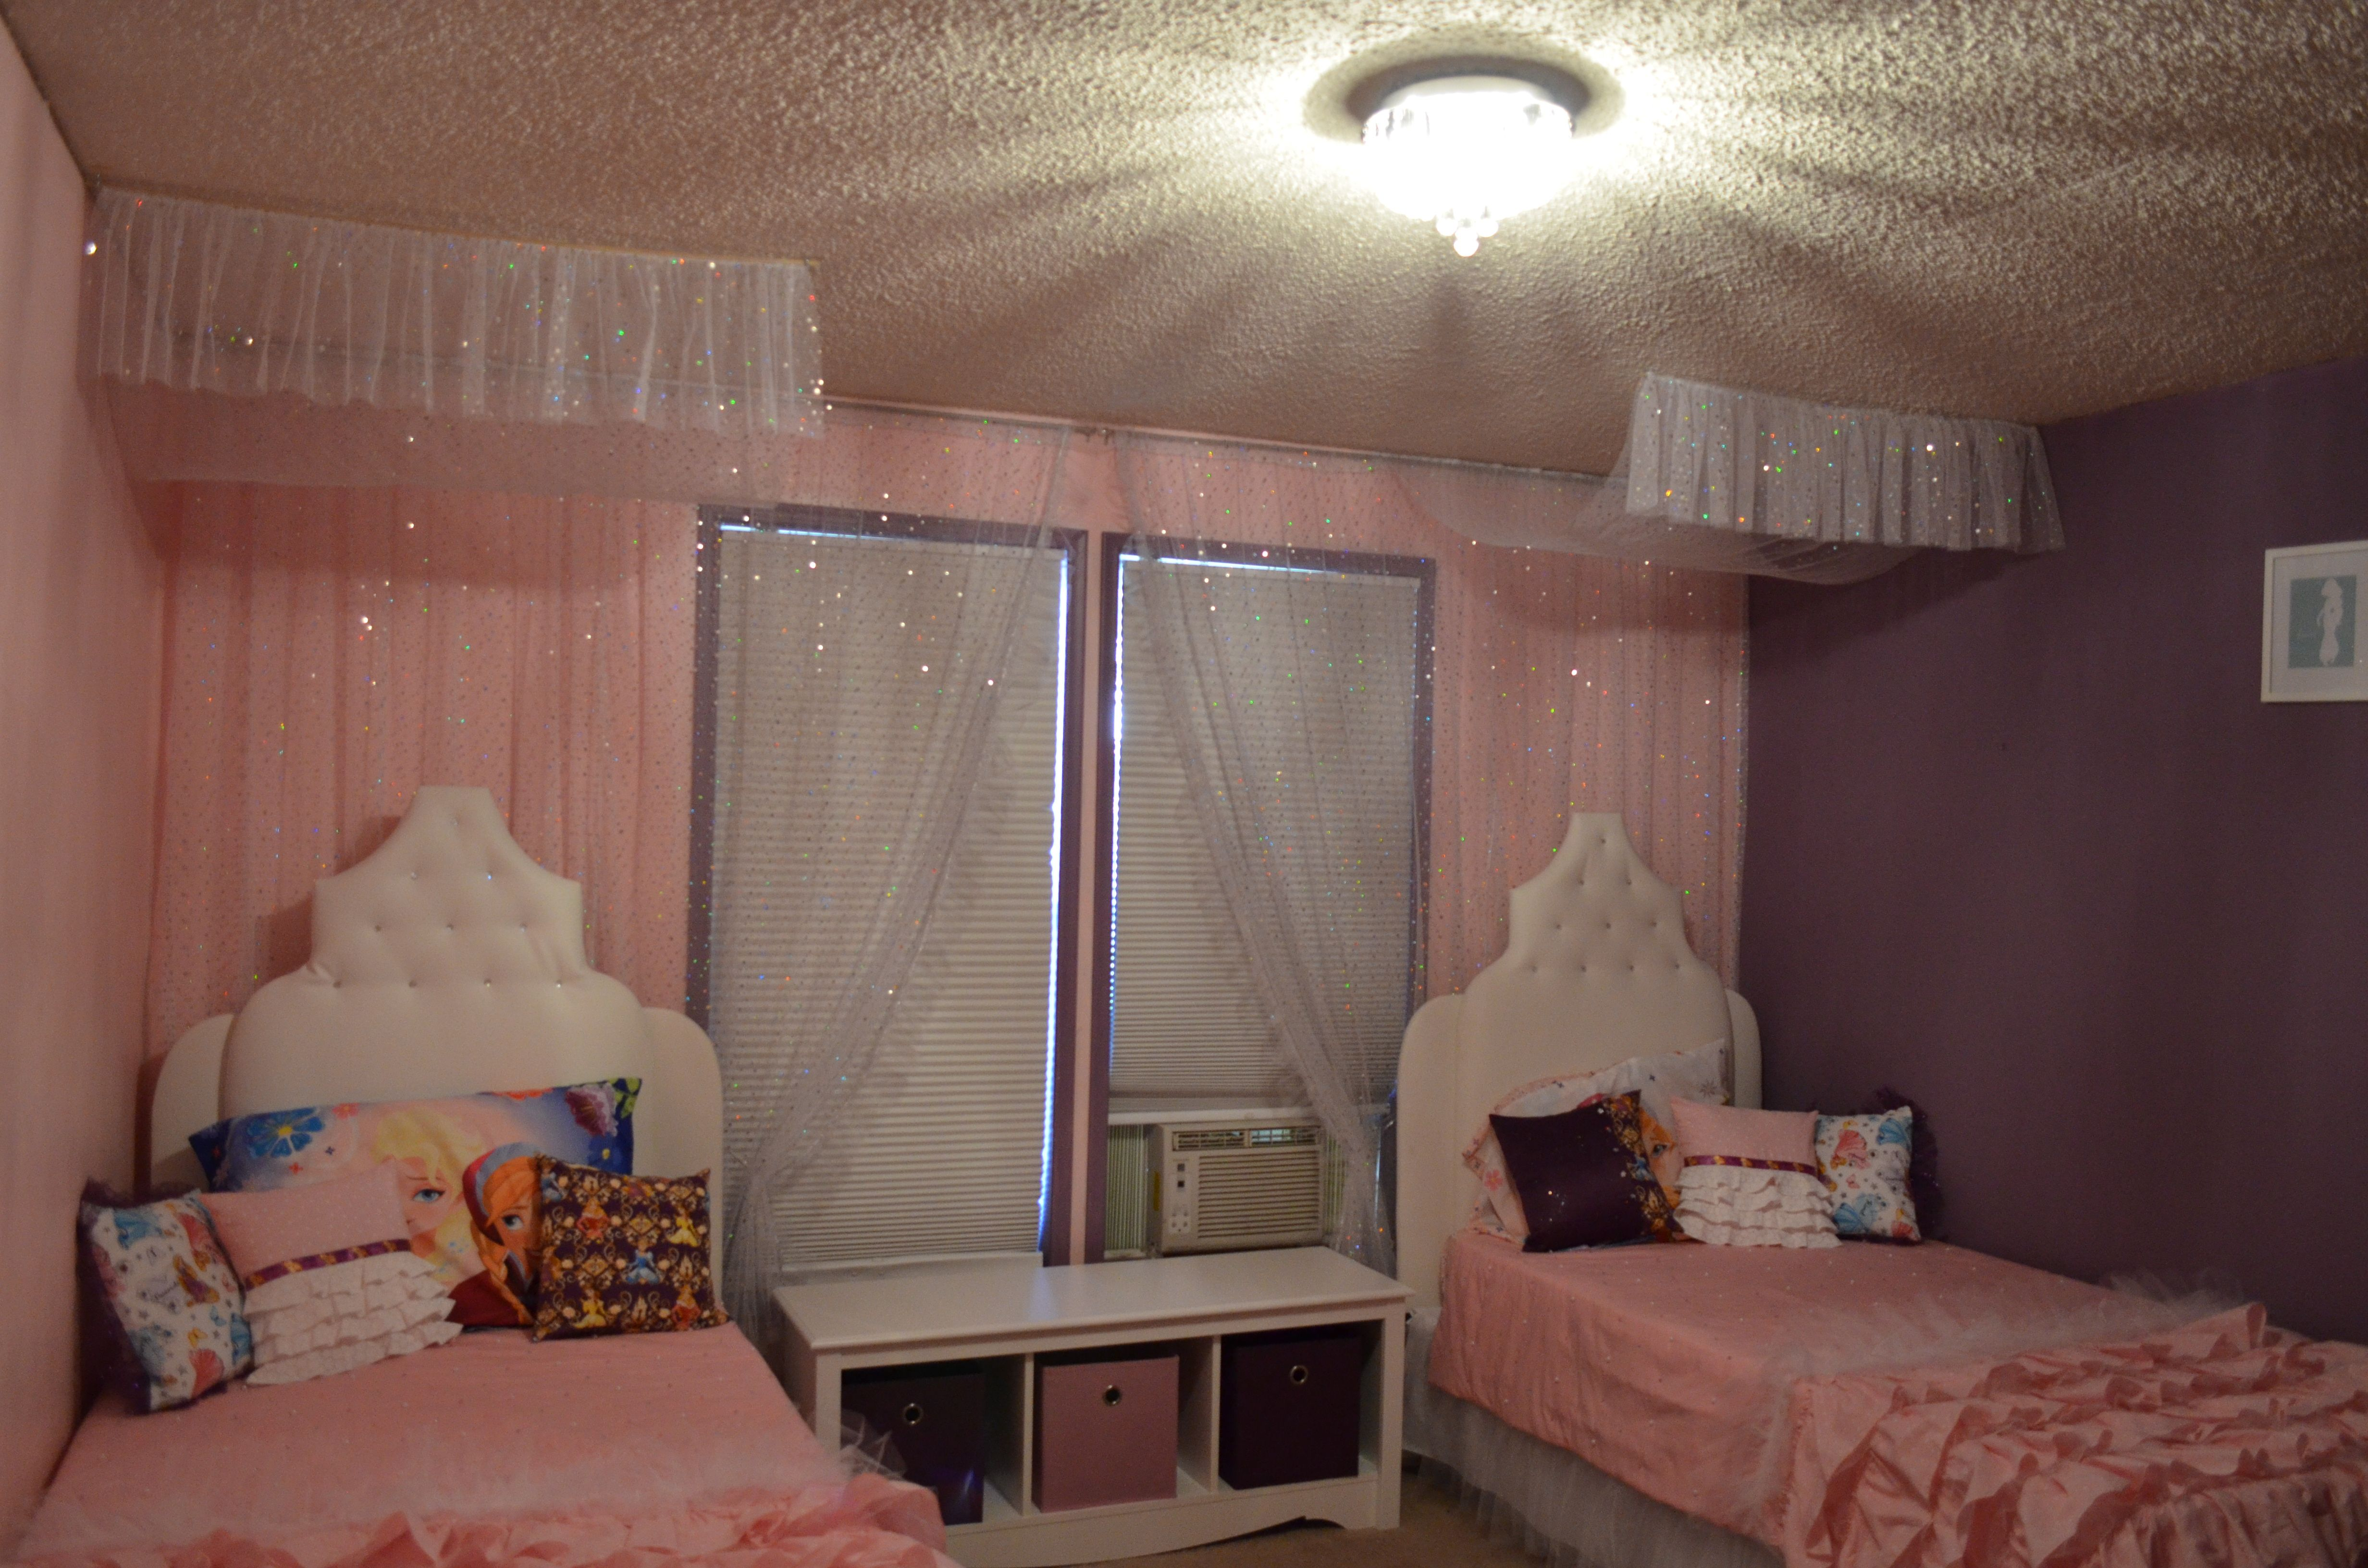 pink polka dot ruffled comforter has tulle between each layer of